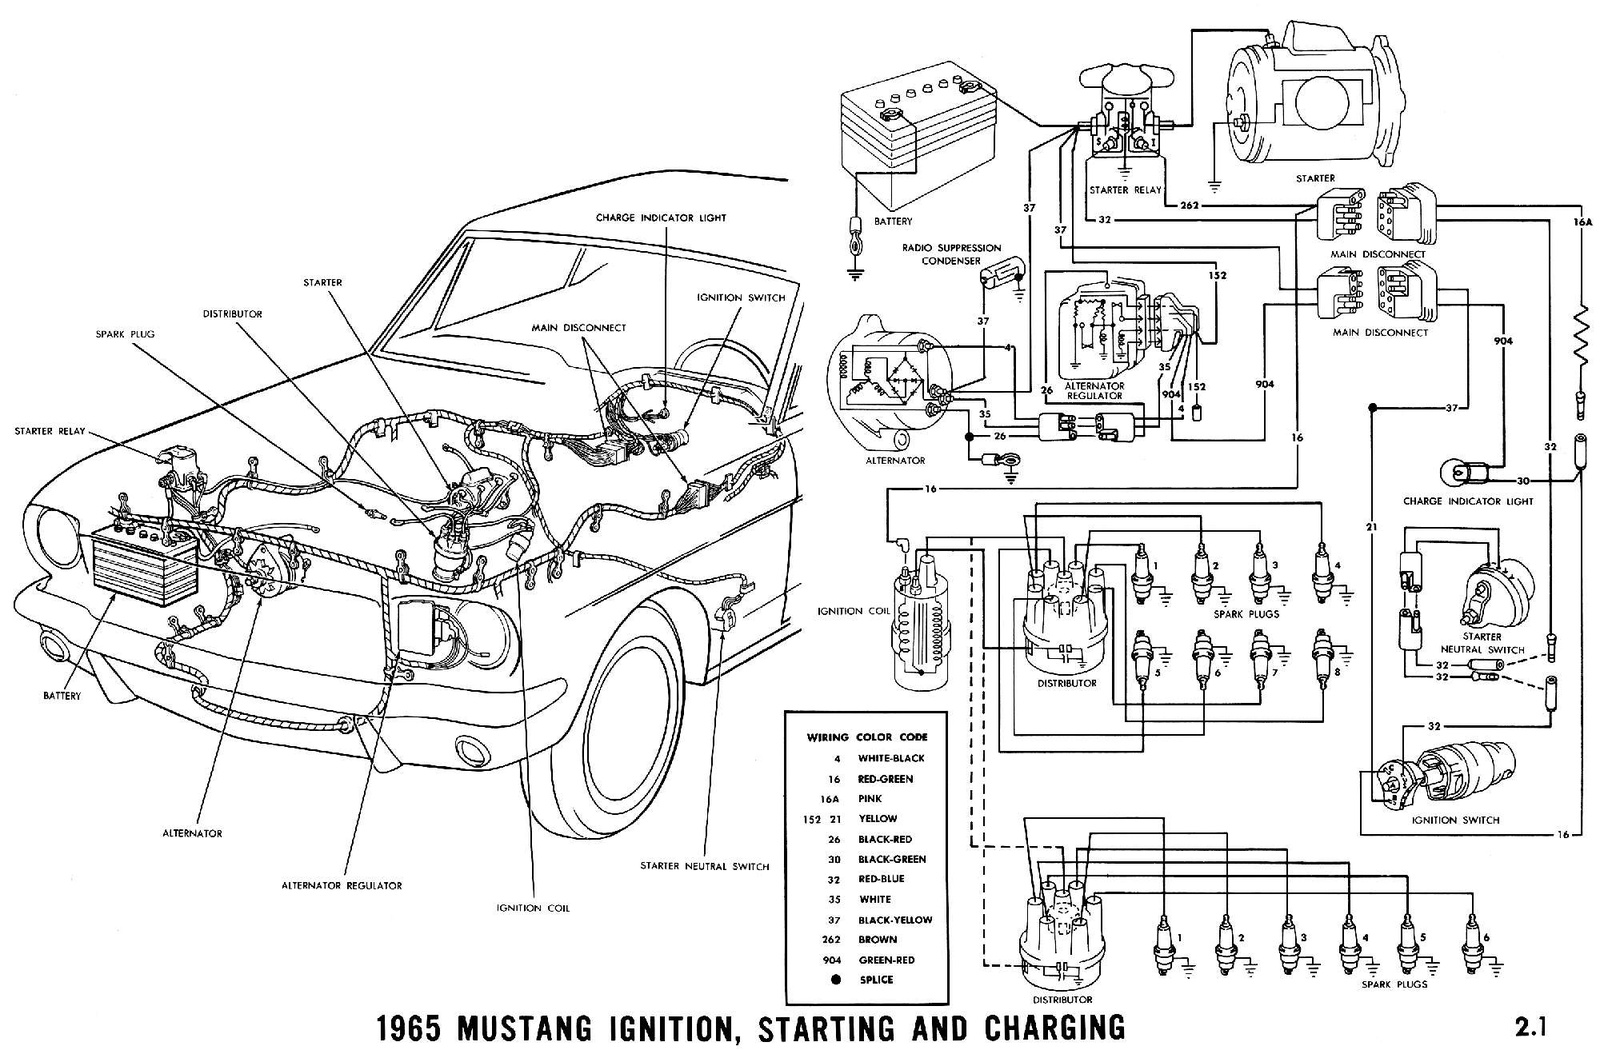 66 Mustang Starter Solenoid Wiring Diagram Custom How To Wire A 53 Ford 1965 Ignition Free Vehicle Diagrams U2022 Rh Generalinfo Co 1966